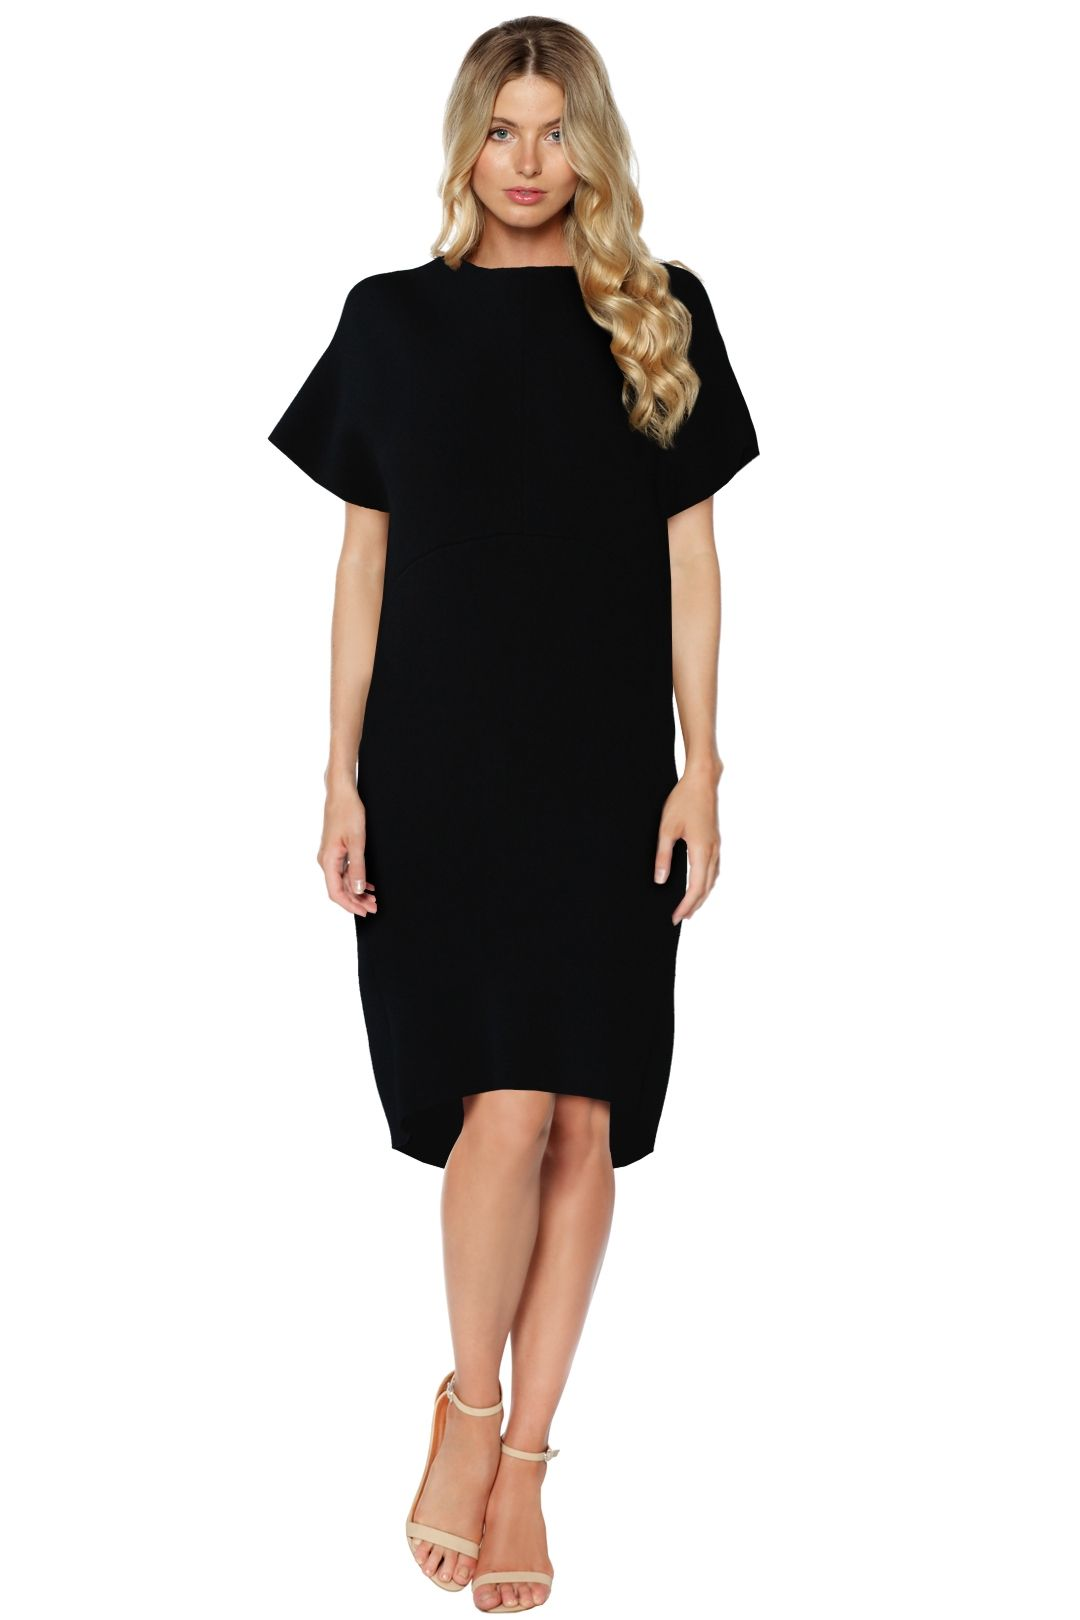 Scanlan Theodore - Black Crepe Knit Cocoon Dress - Black - Front